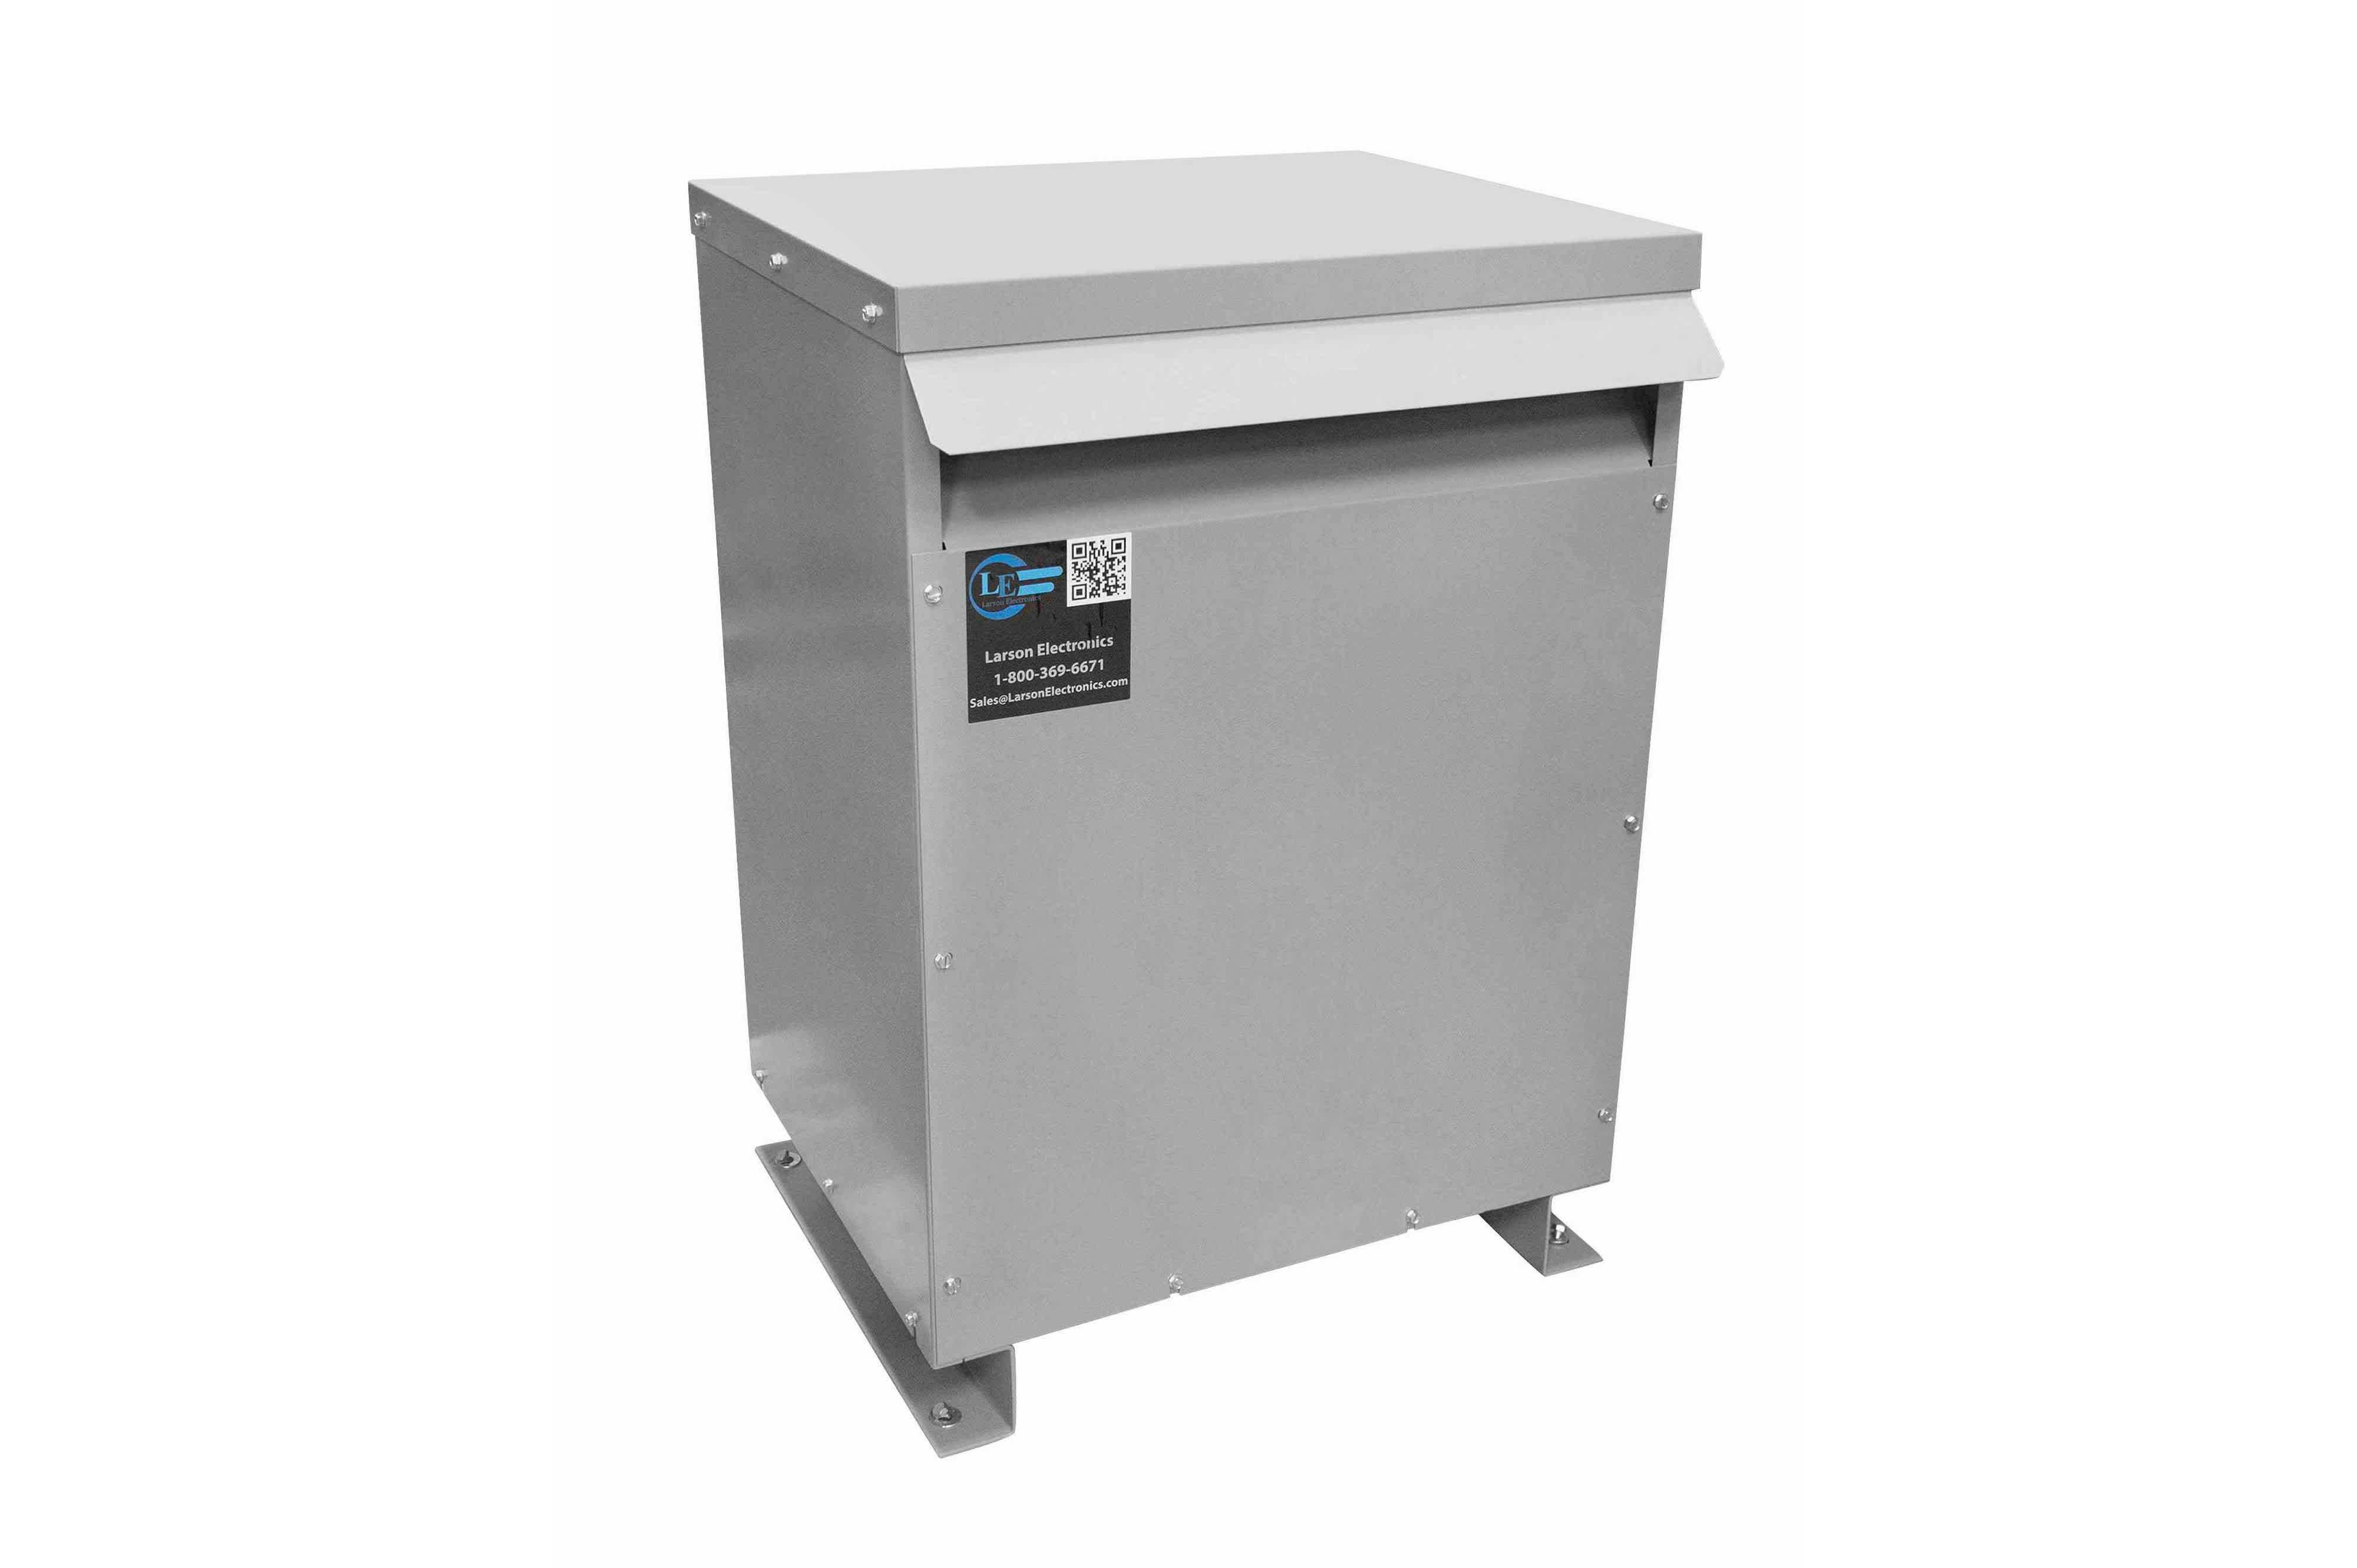 167 kVA 3PH Isolation Transformer, 600V Delta Primary, 240 Delta Secondary, N3R, Ventilated, 60 Hz